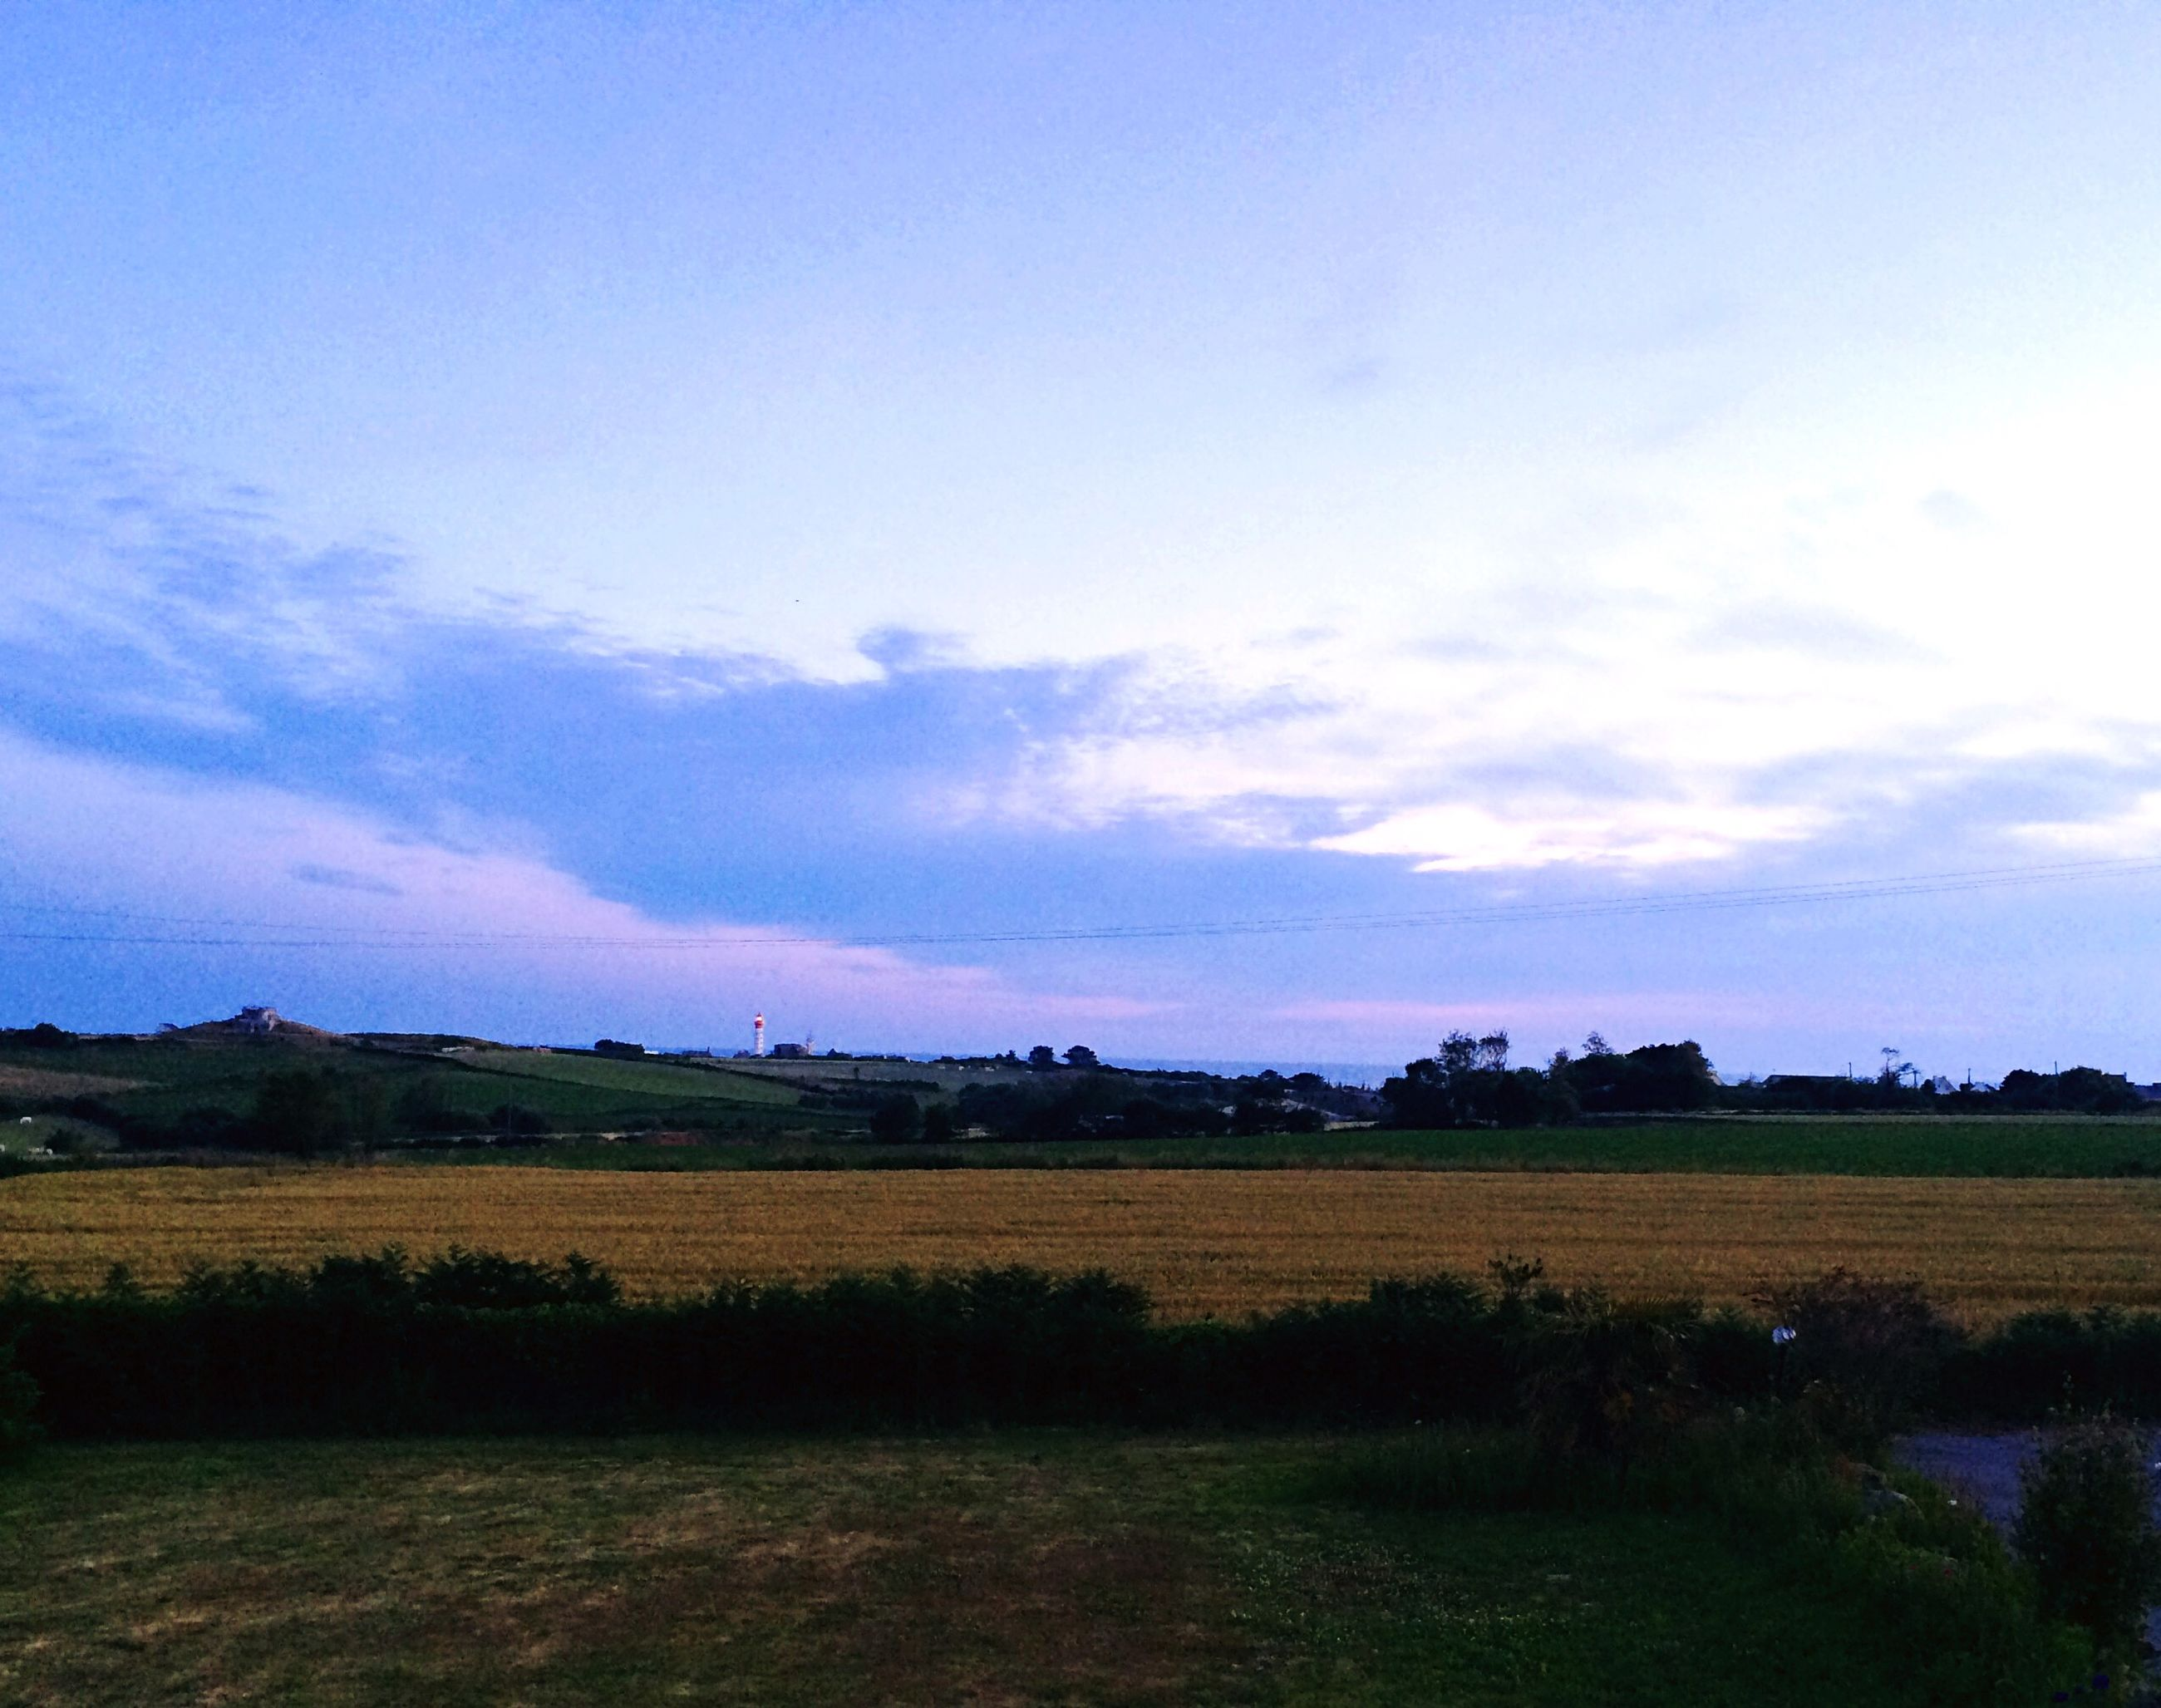 field, sky, landscape, rural scene, tranquil scene, agriculture, tranquility, beauty in nature, scenics, farm, nature, building exterior, growth, cloud - sky, built structure, architecture, tree, blue, cloud, grass